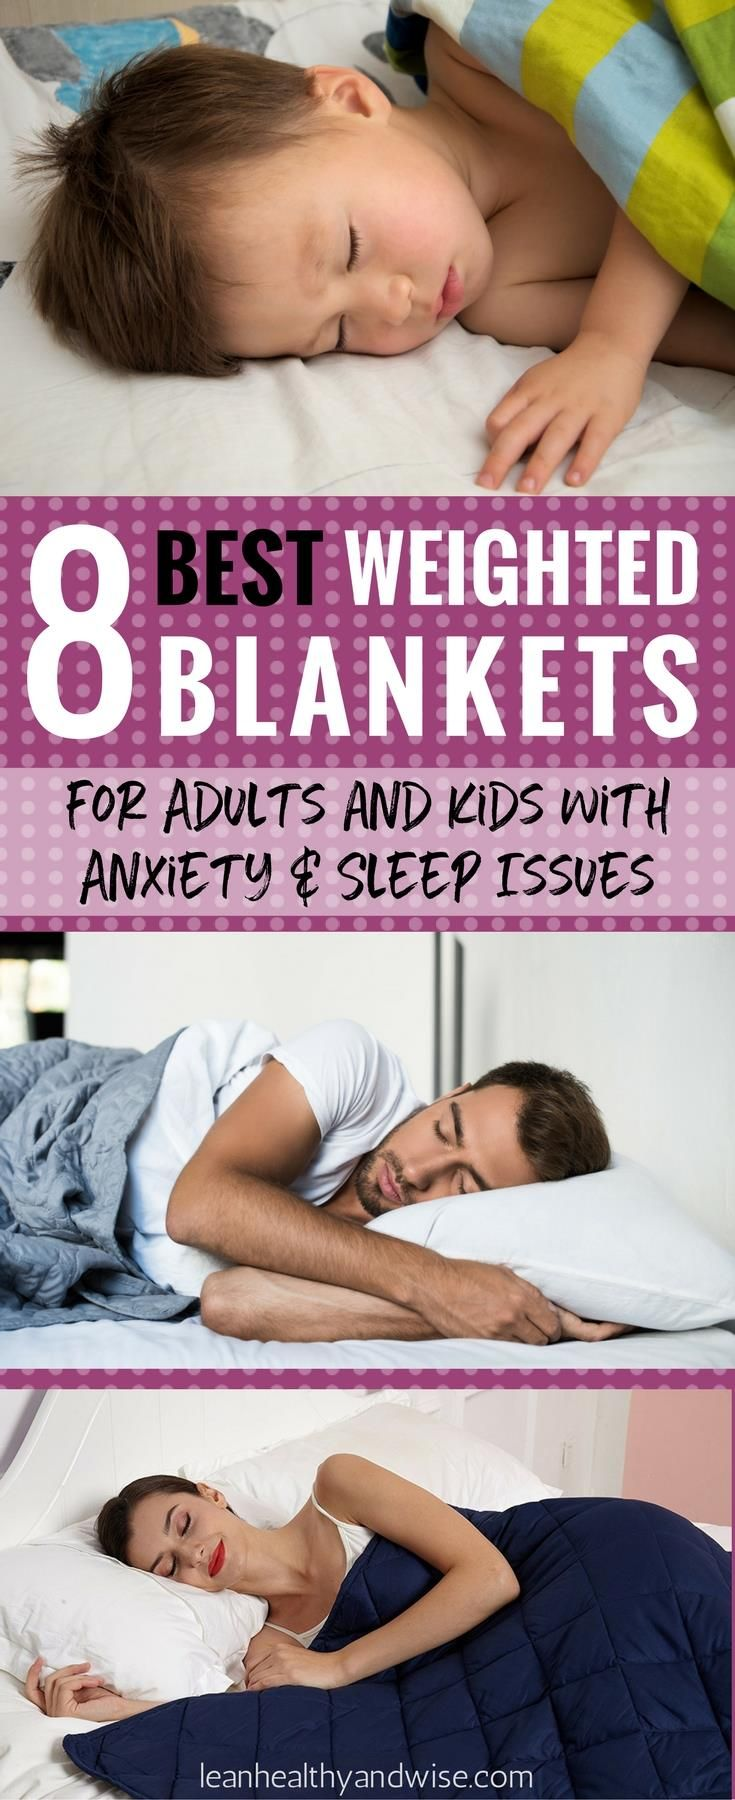 Check out the amazing weighted blankets that can be safely used by kids and adul...